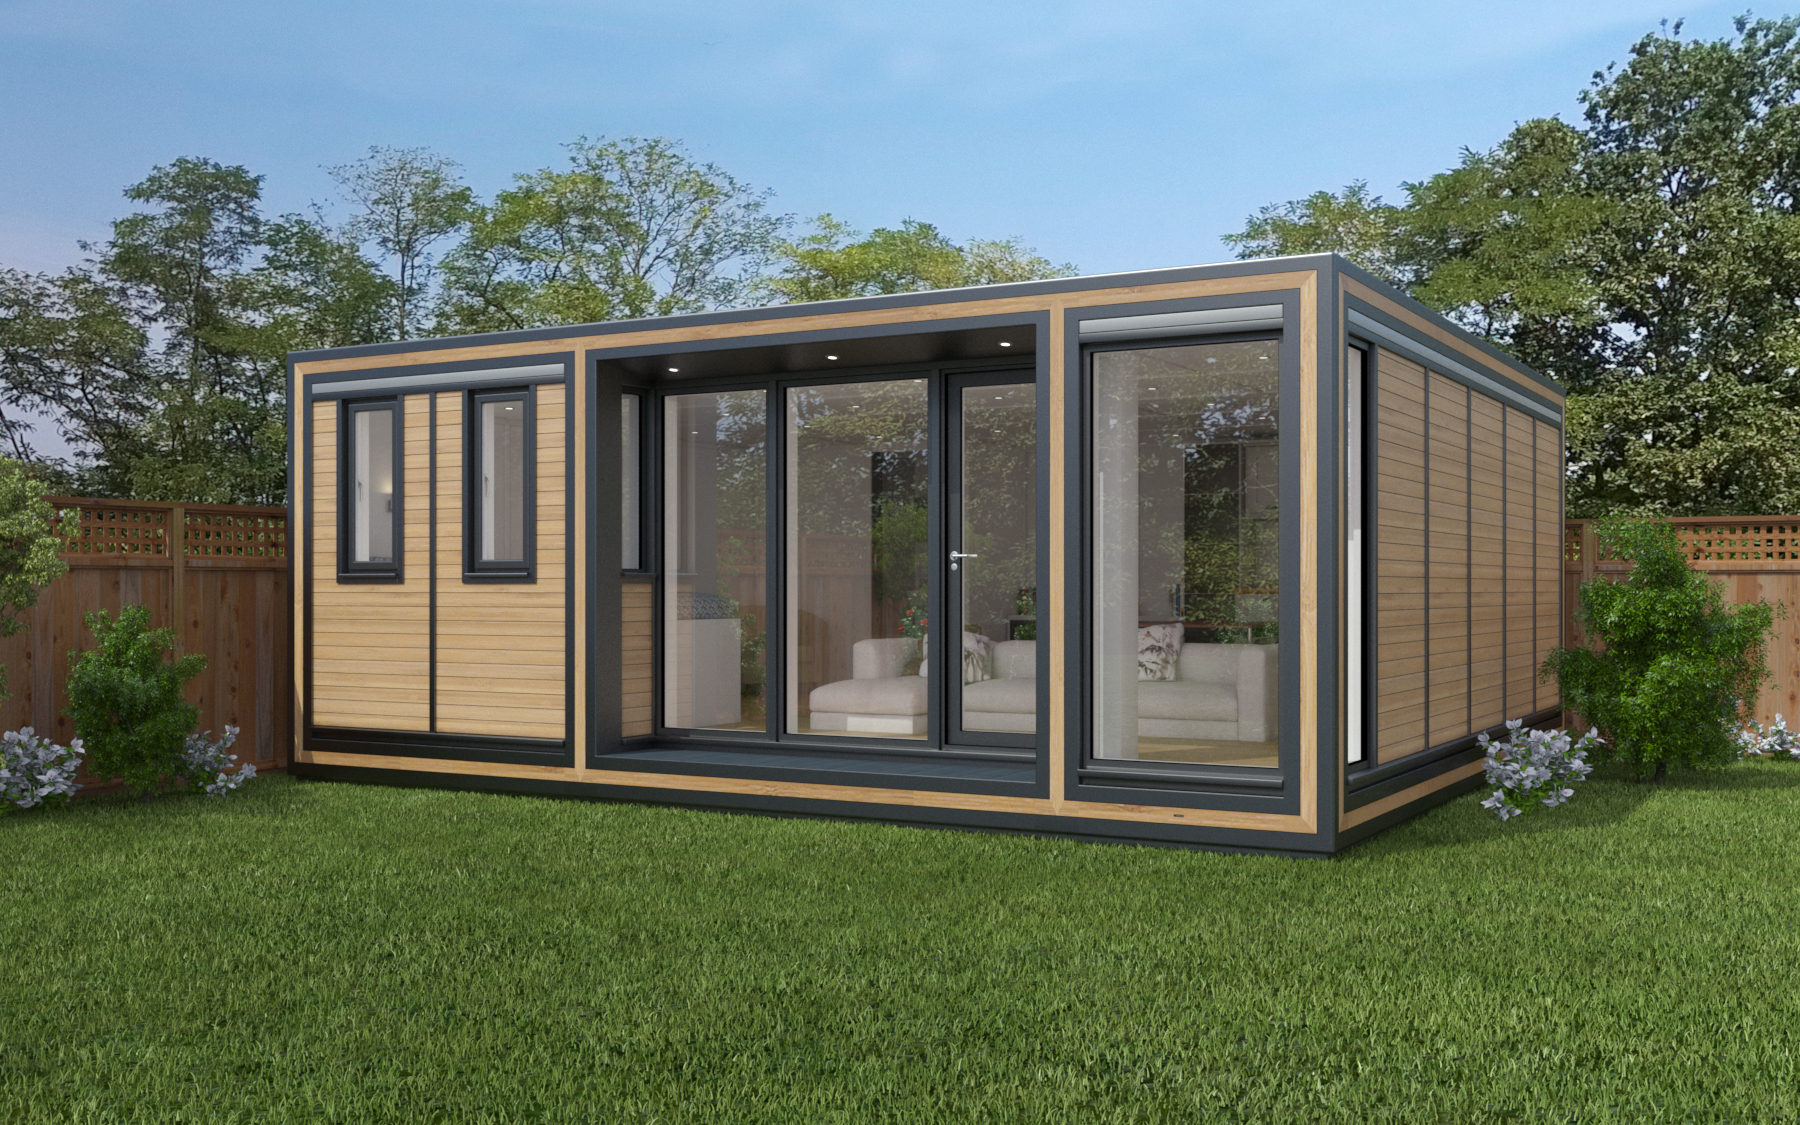 ZEDBOX 655  (6 x 5.5)  Internal Size: 6401 x 5888  External Size: 6871 x 6358  Bed Options: Single, Double or two doubles.  Kitchen Options: Micro Kitchen or Kitchen  Wet Room Options: Yes  Portico: Yes  Price:  £49,000    Optional Extras    Request Zedbox Catalogue